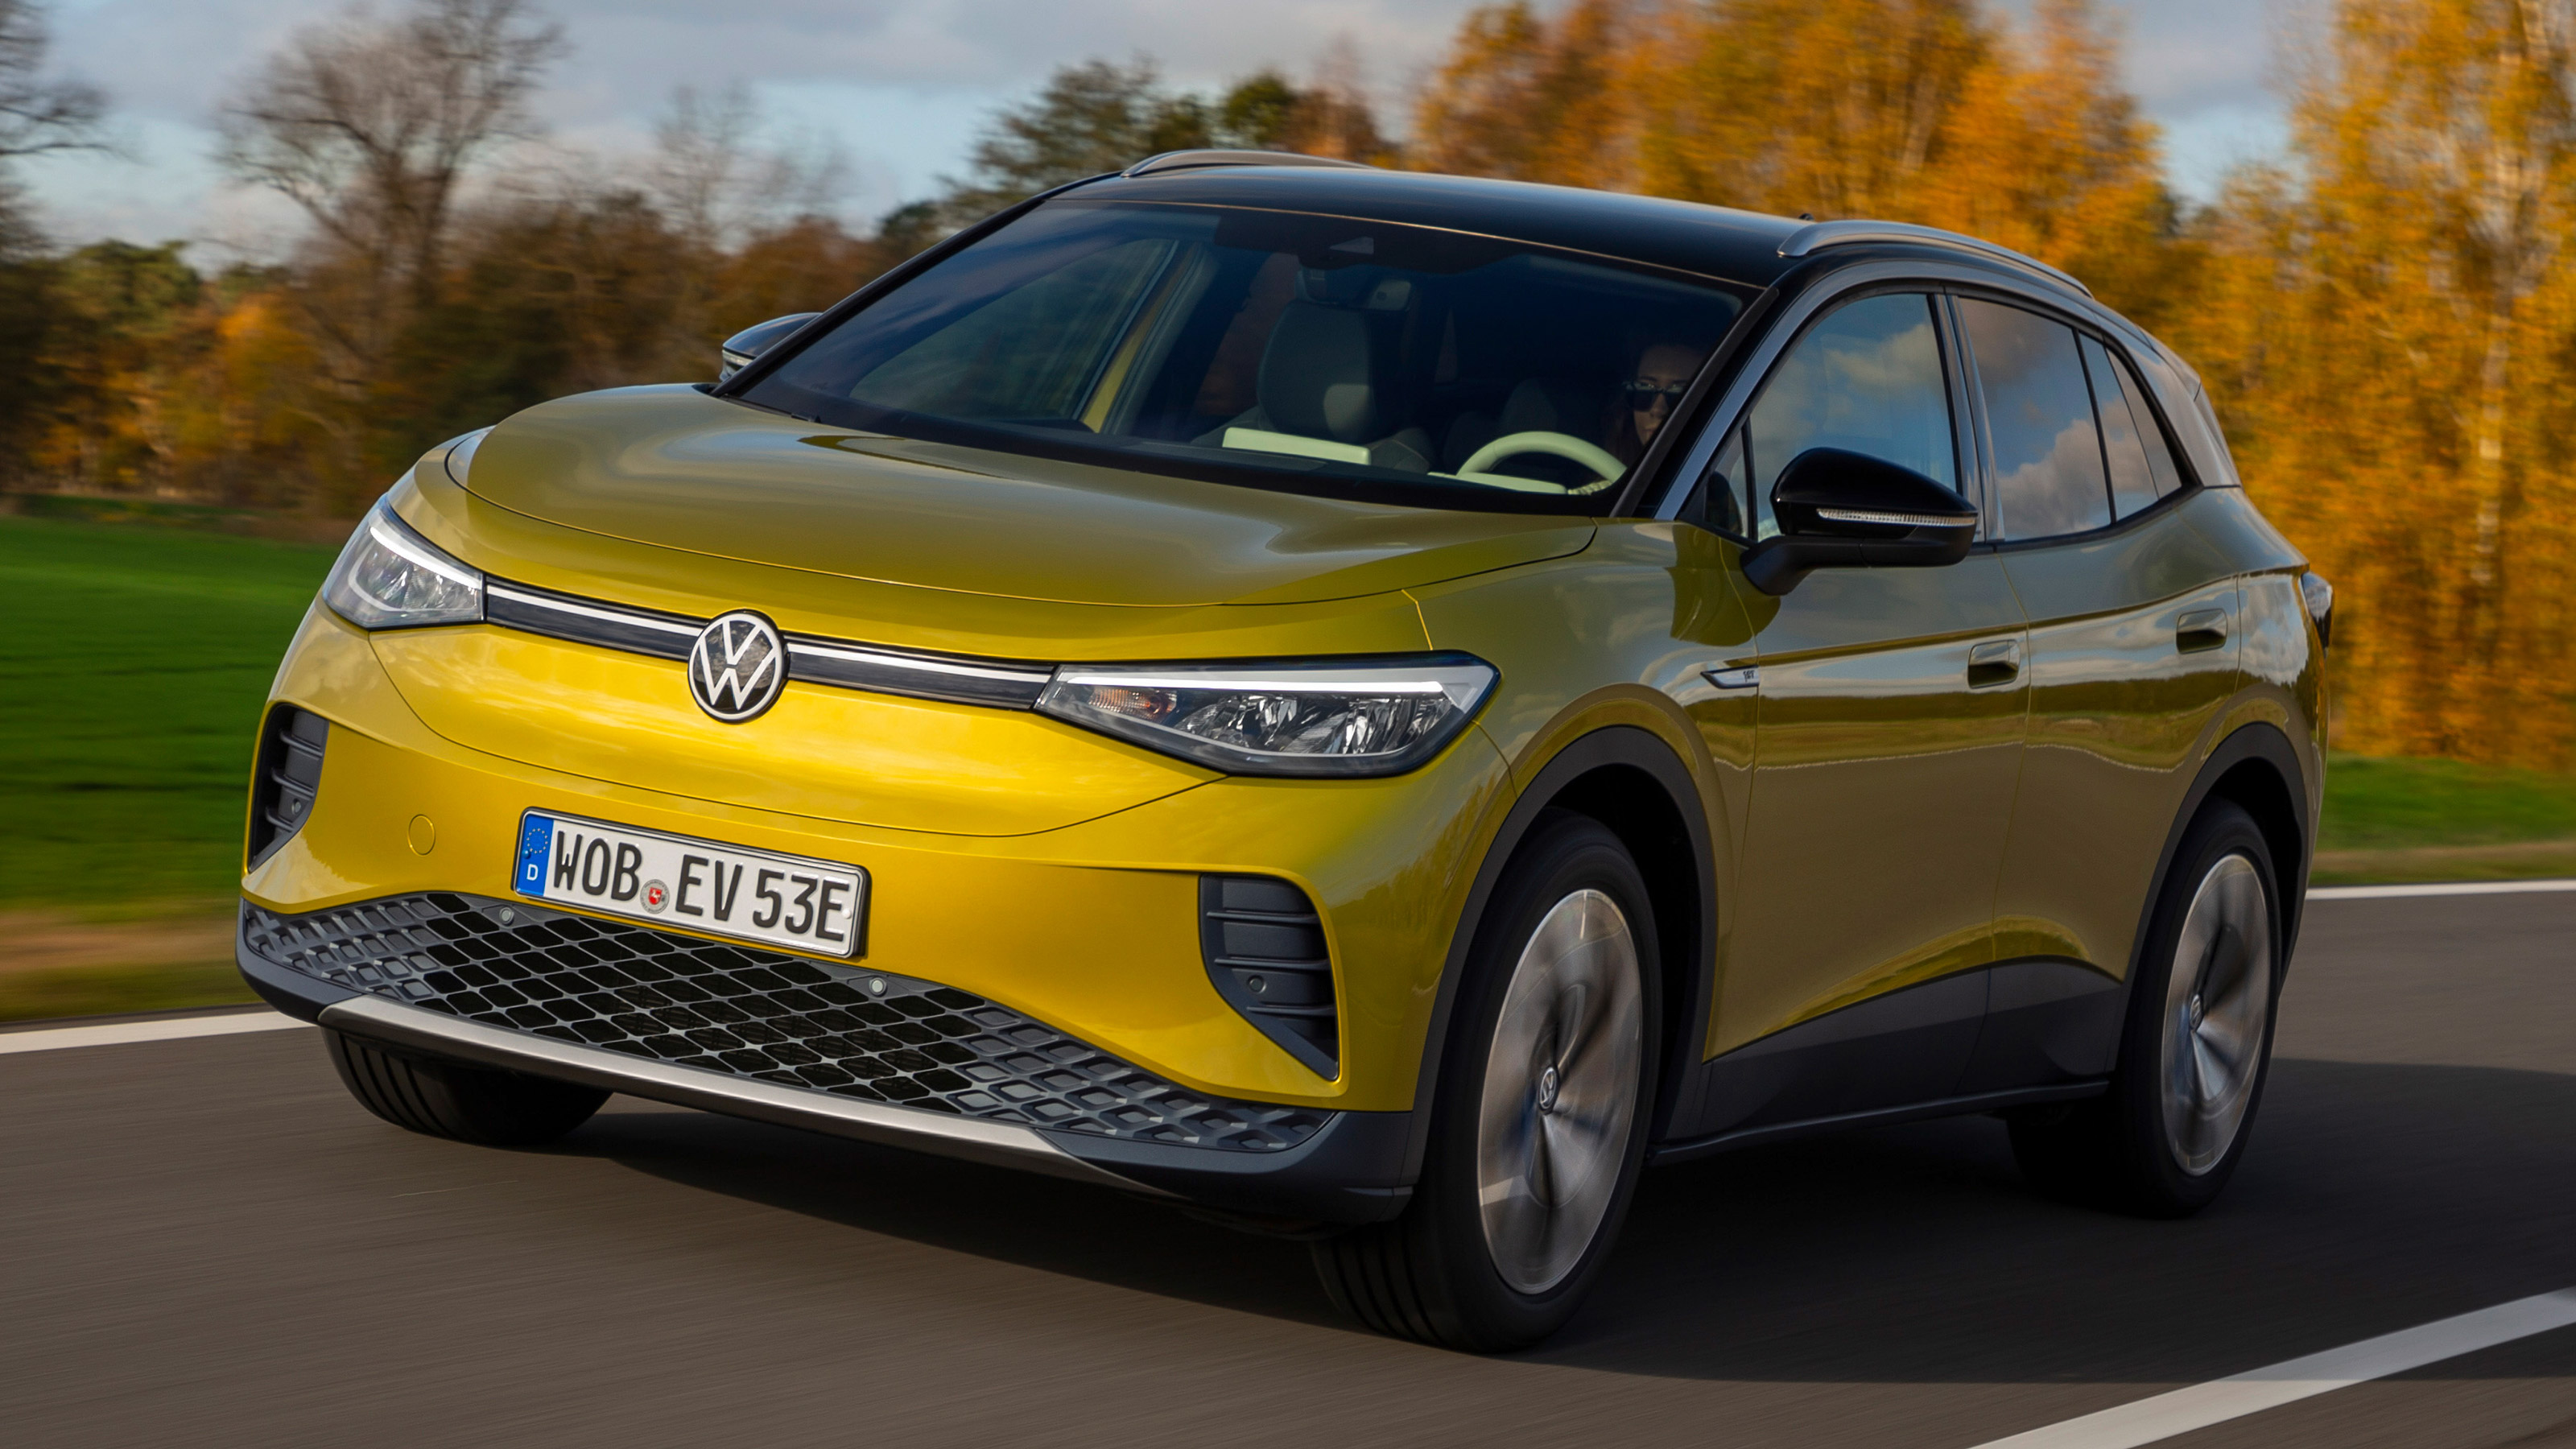 Volkswagen ID.4 electric SUV 2021 pictures | DrivingElectric